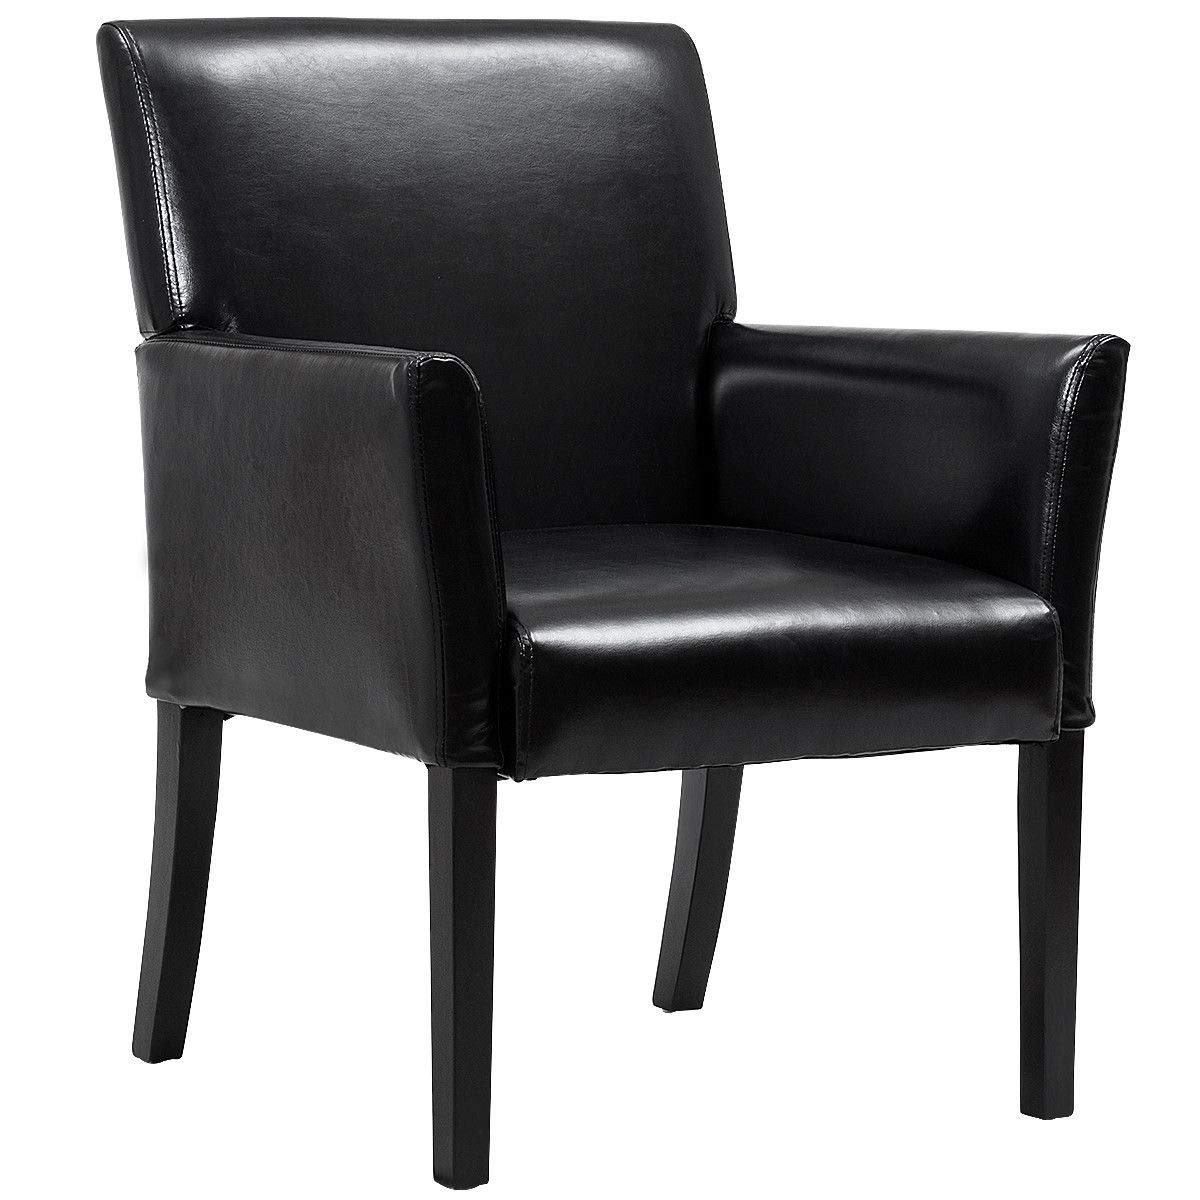 Giantex Leather Reception Guest Chairs W Padded Seat And Arms Ergonomic Mid Back Office Executive Side Chair For Meeting Waiting Room Conference Office Guest Chairs Black Buy Online In Bahamas At Bahamas Desertcart Com Productid 59088395